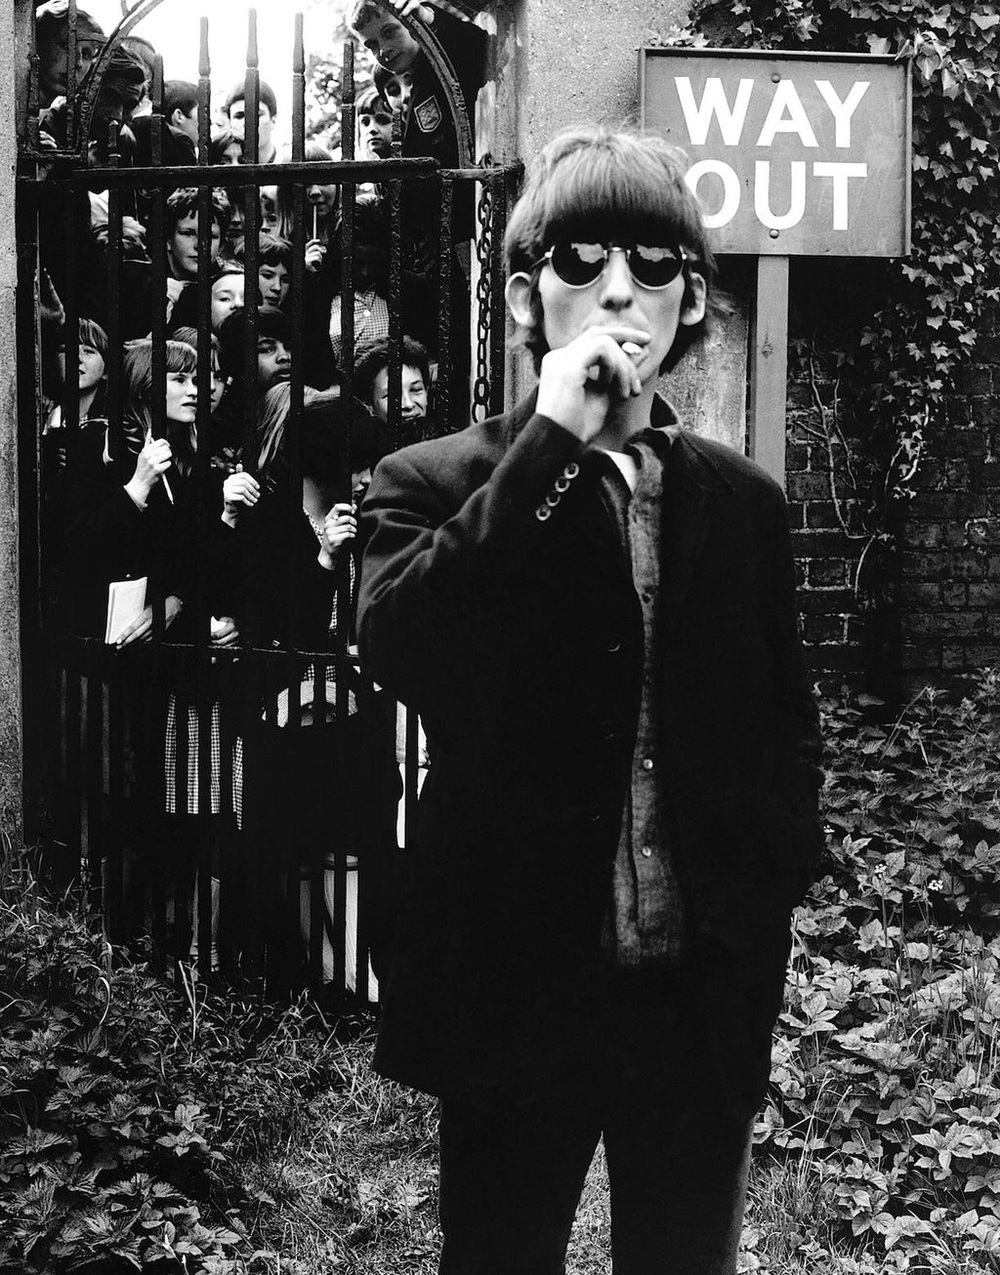 George Harrison at Chiswick House, May 20th 1966.